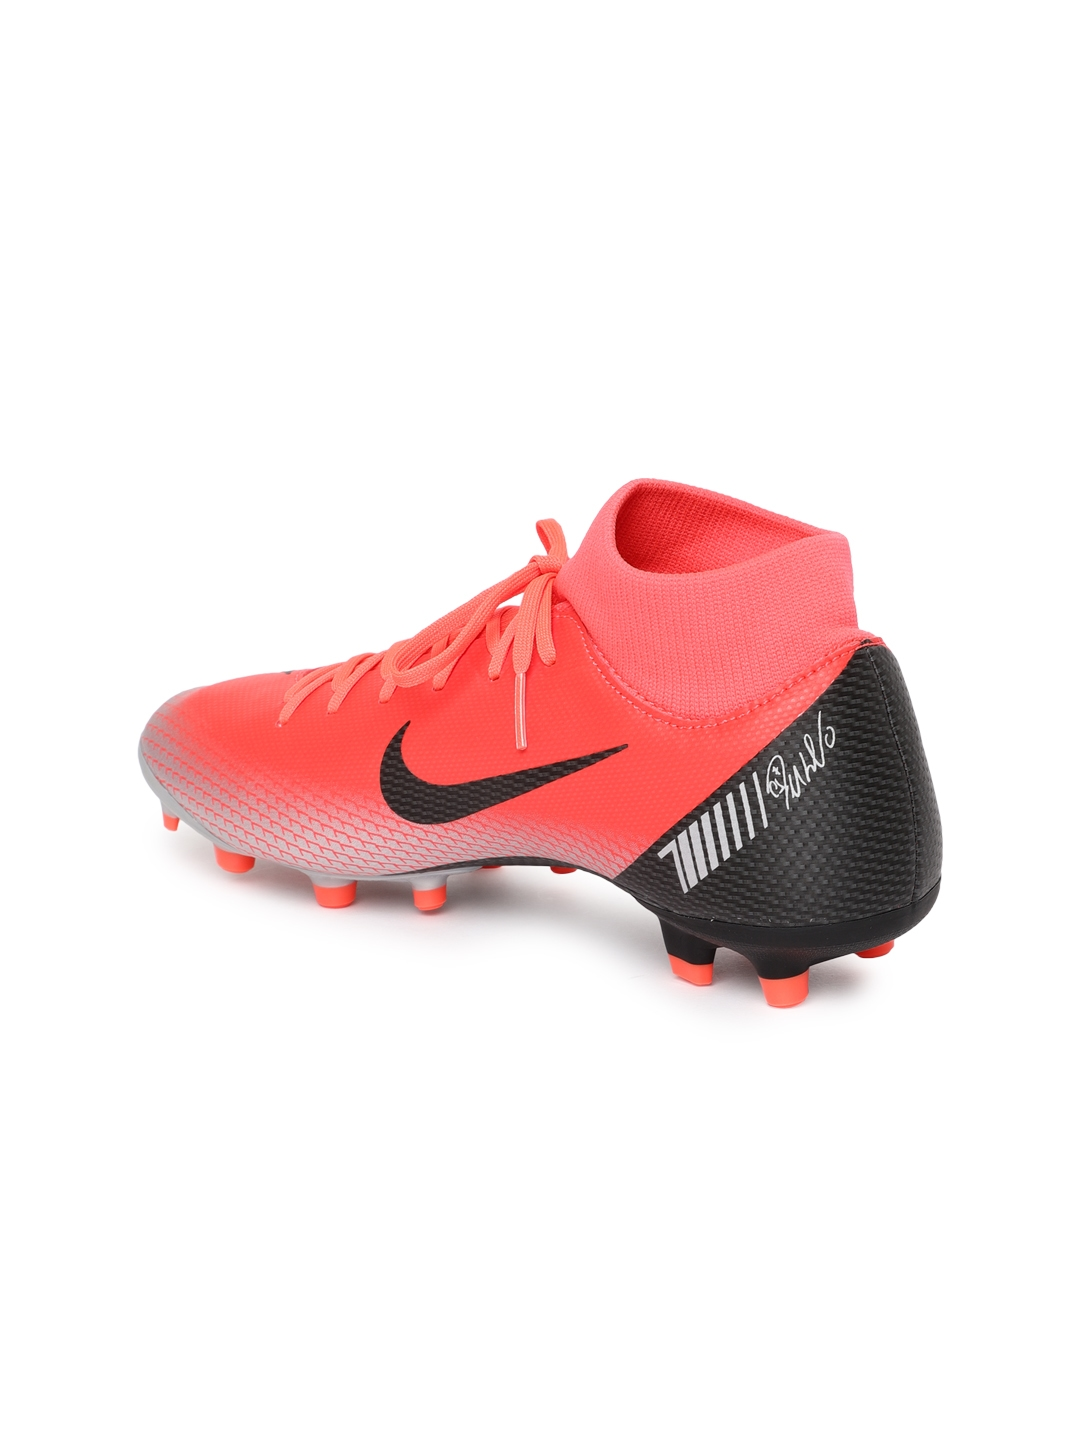 4bfc11e86 Buy Nike Unisex Red Superfly 6 Academy CR7 FG MG Football Shoes ...